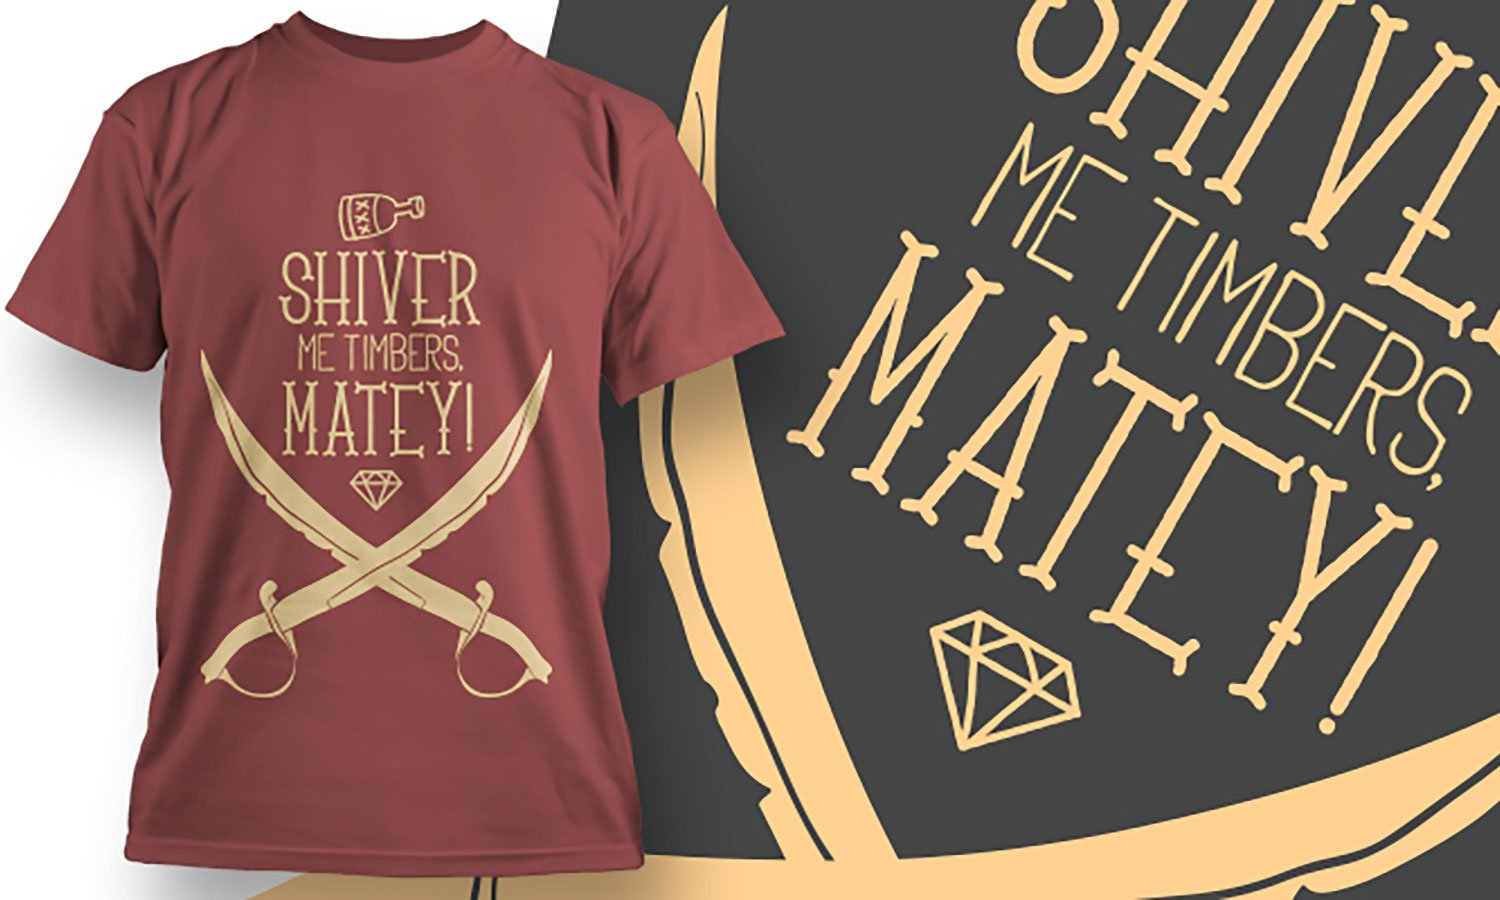 Matey - Printed T-Shirt for Men, Women and Kids - TS431